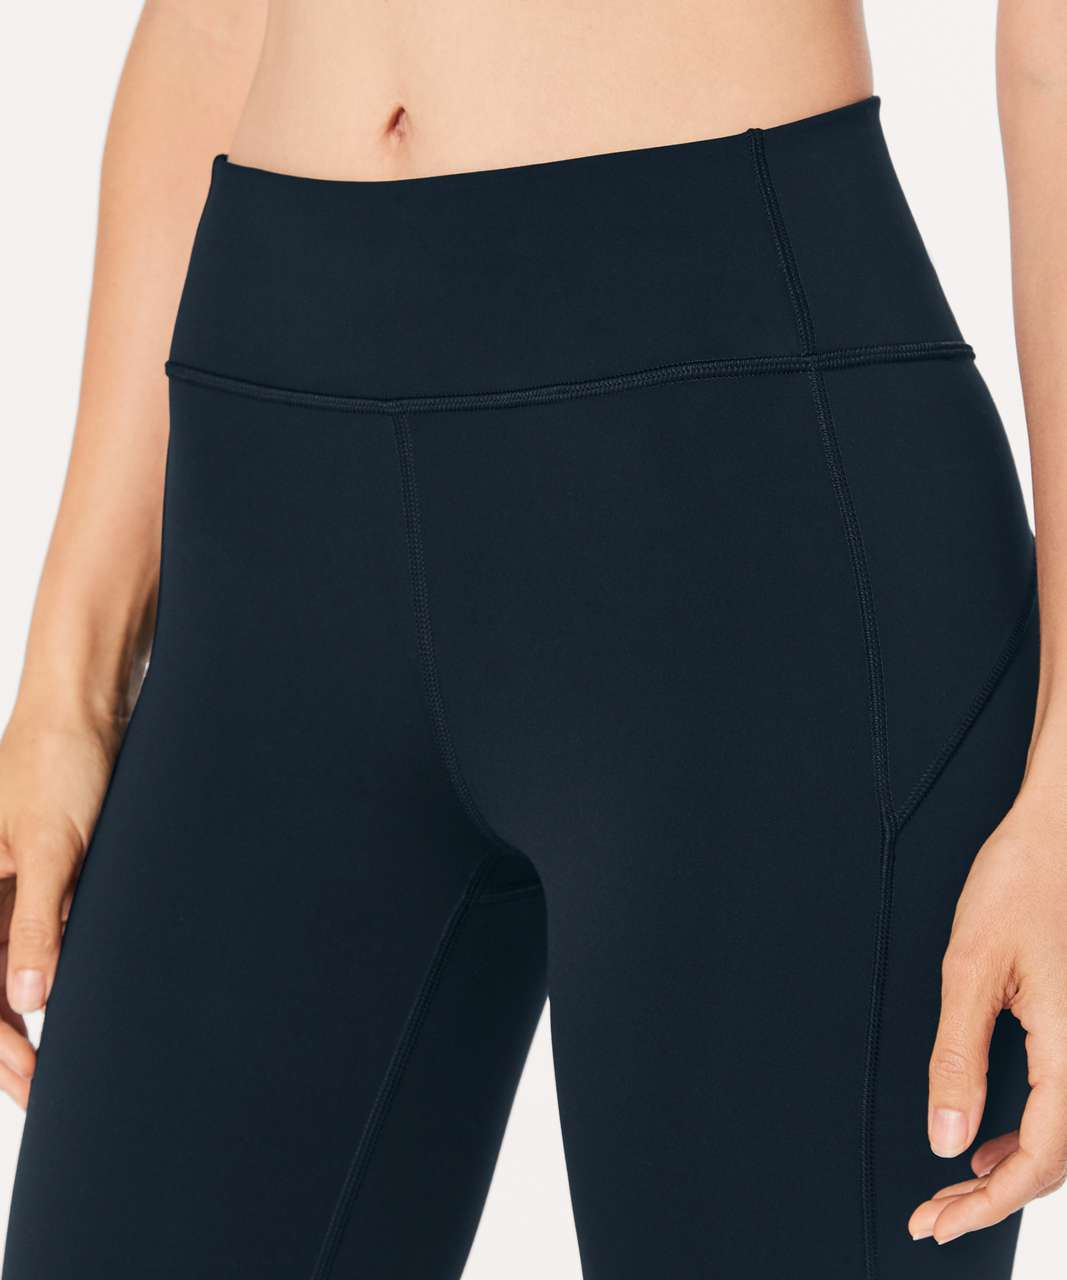 "Lululemon In Movement 7/8 Tight *Everlux 25"" - Nocturnal Teal"